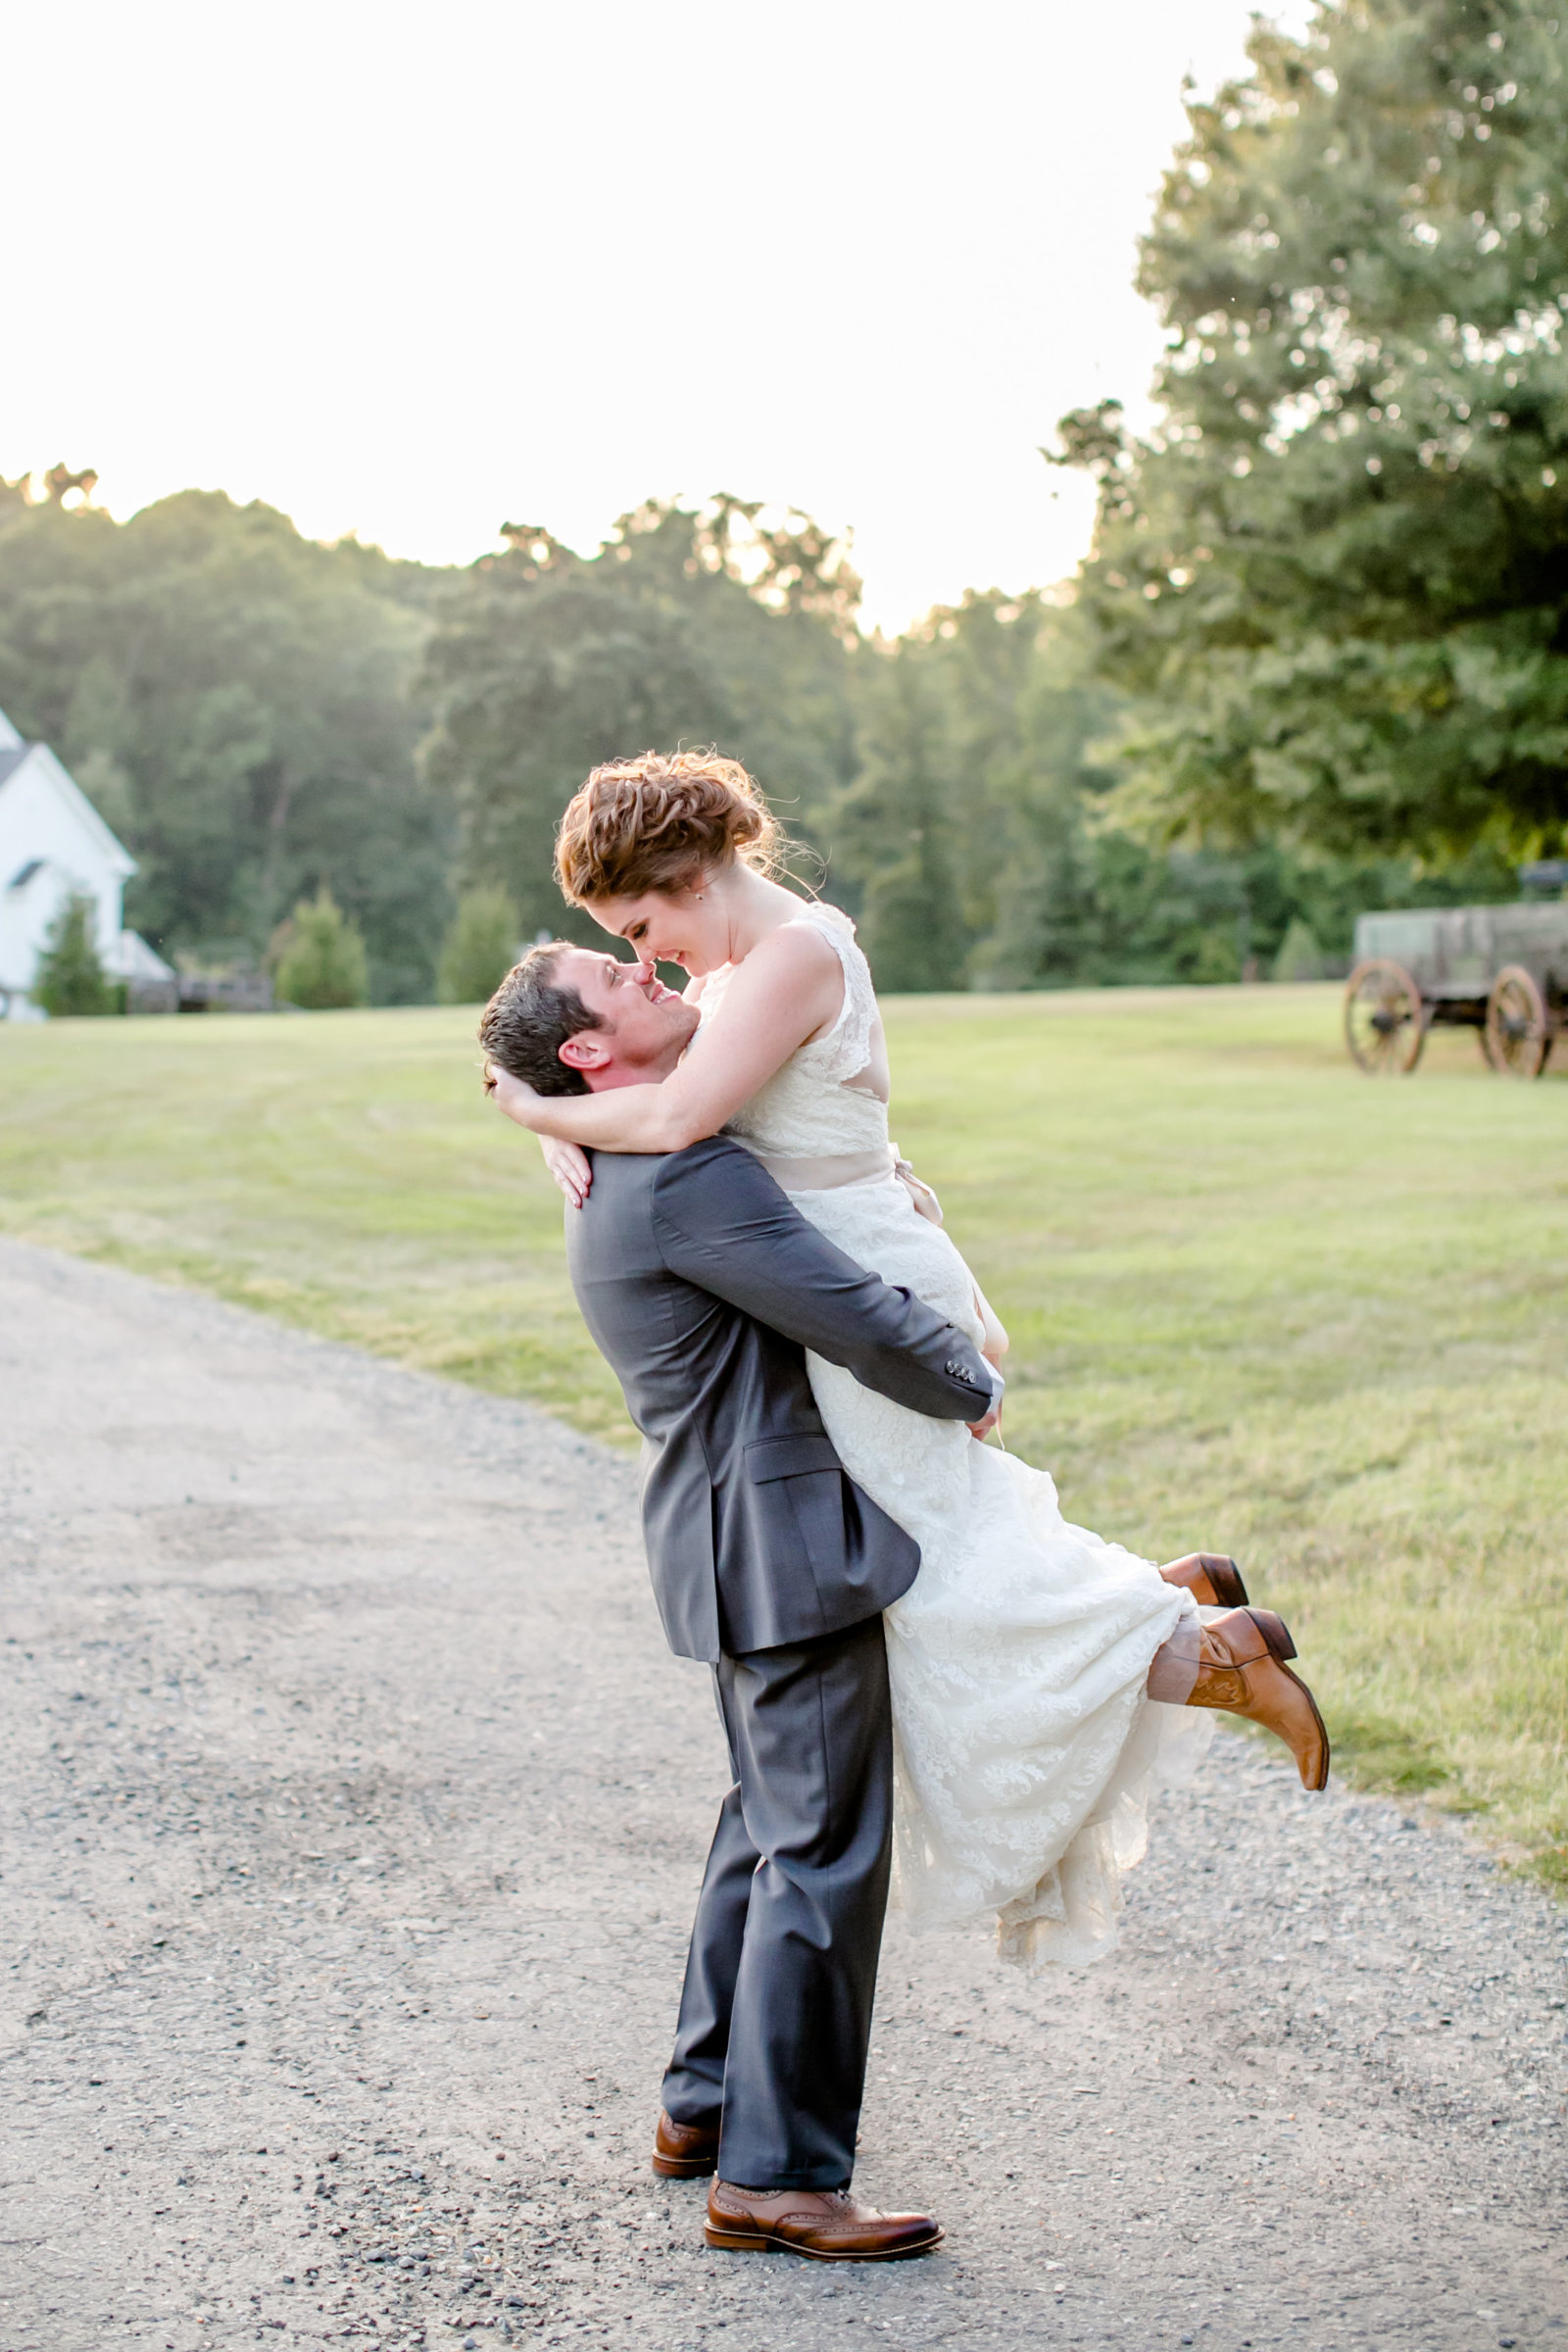 Carley Rehberg Photography - Wedding Photographer - Photo30